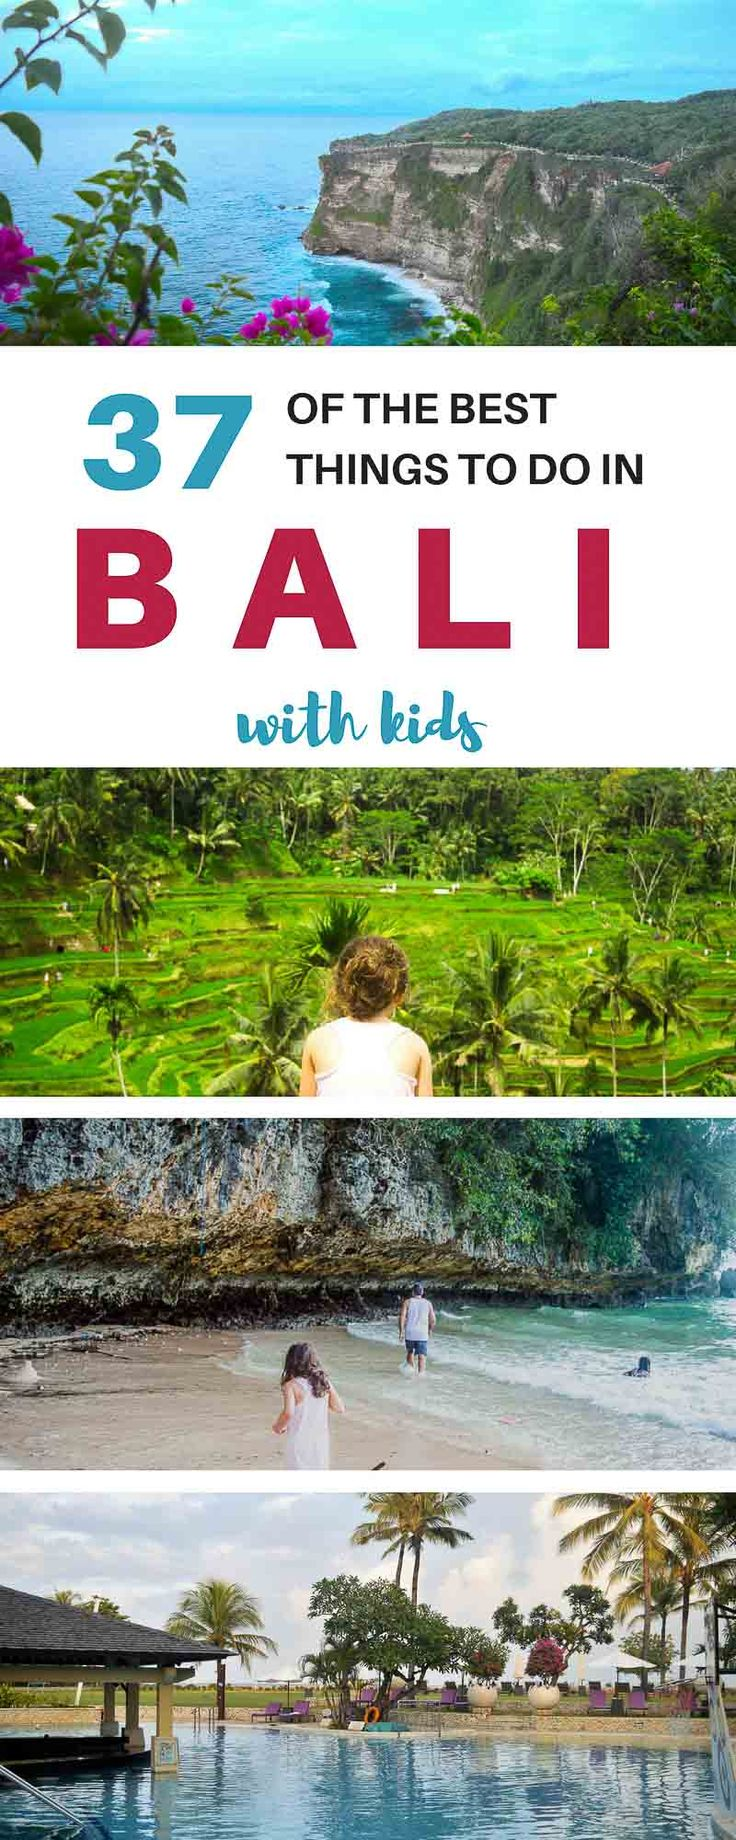 Bali with Kids | Things to do in Bali with kids | Bali with kids holidays | Bali trips with kids | where to stay in Bali with Kids | Bali holidays | Bali Vacation